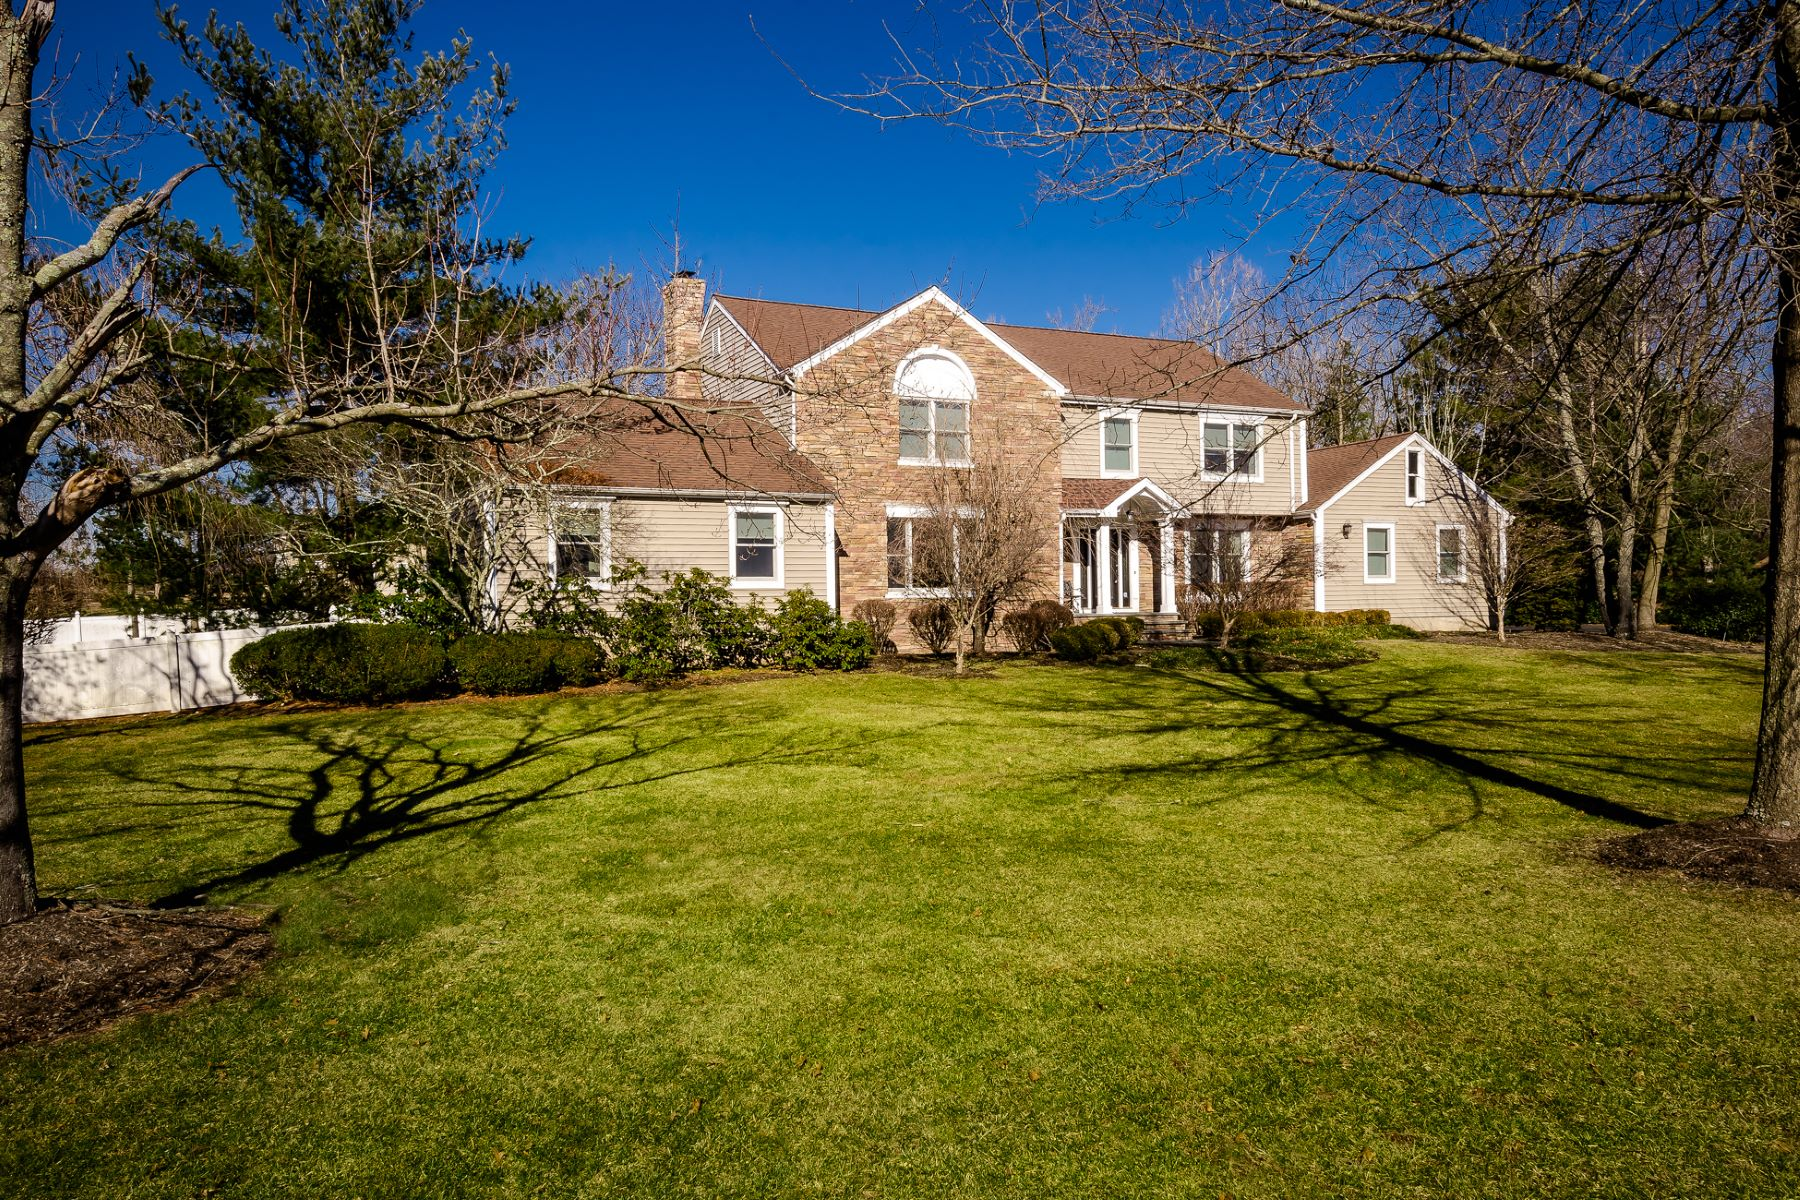 Property for Sale at Designed For Fun 5 Berkley Avenue, Belle Mead, New Jersey 08502 United States